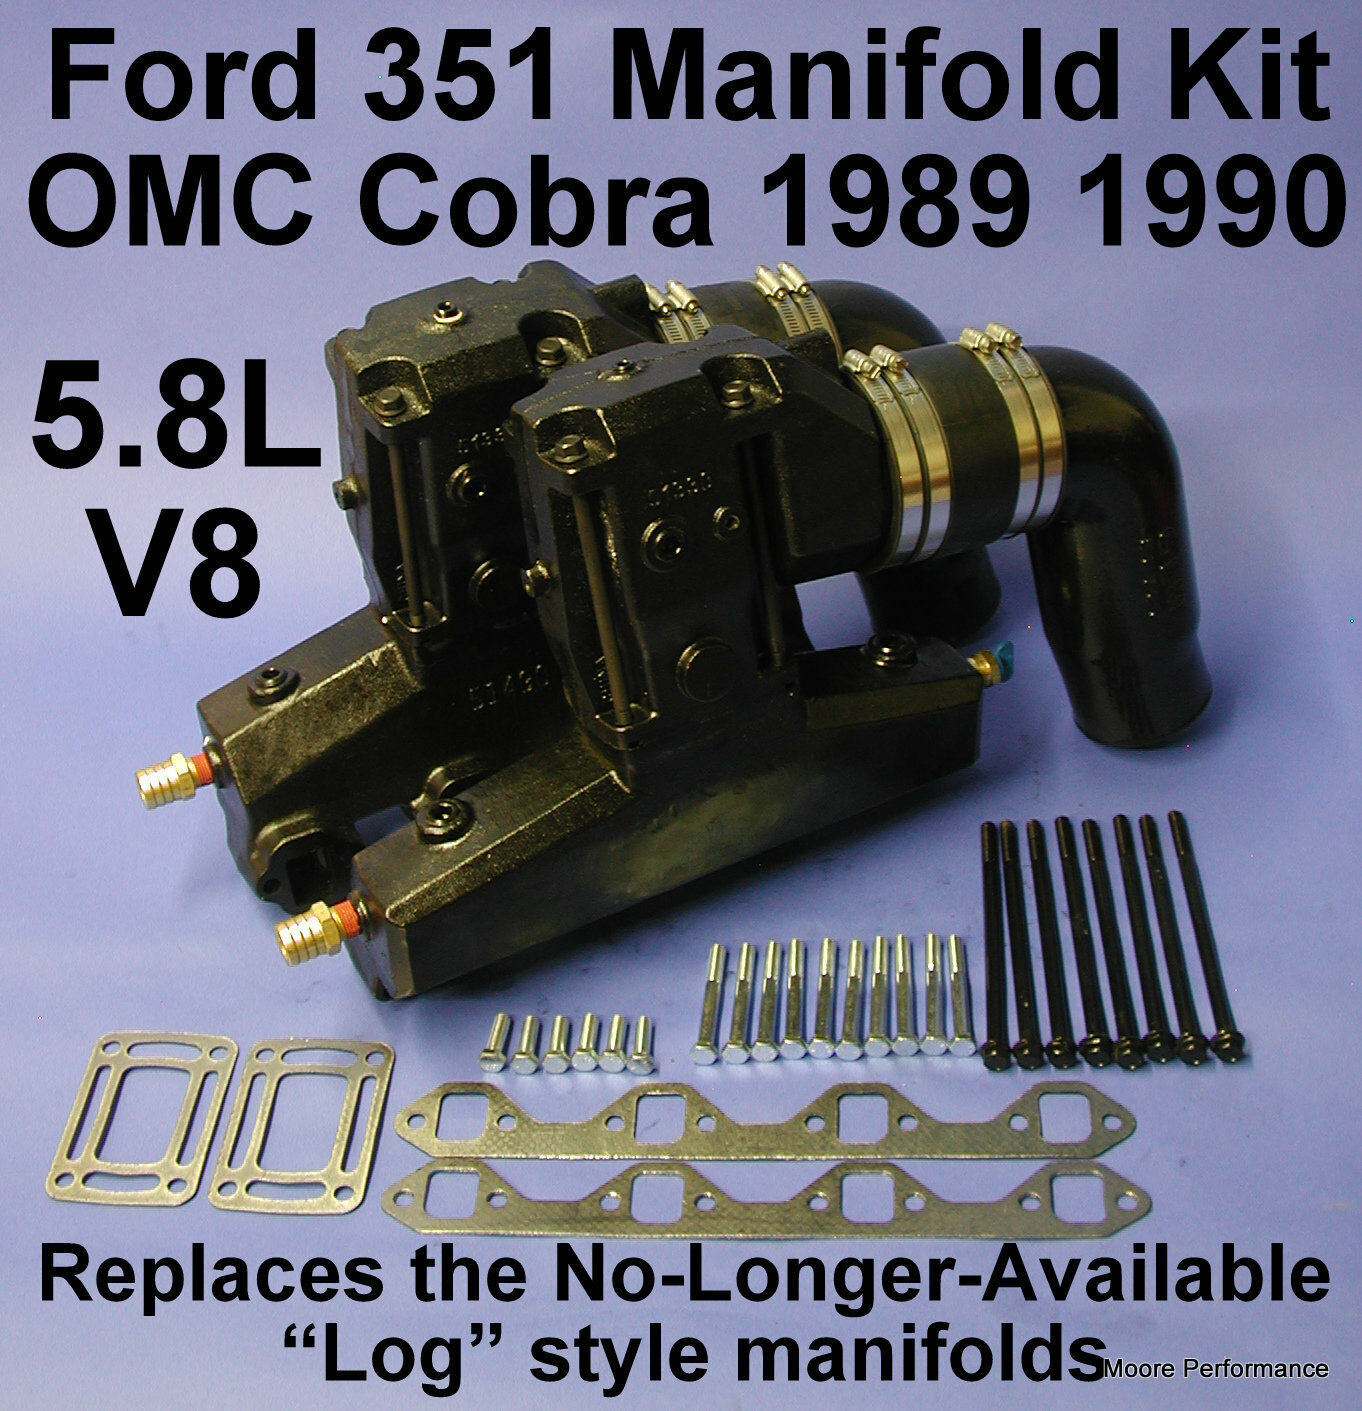 FORD 351 5.8L V8 OMC EXHAUST MANIFOLD KIT 1989-90 REPLACES 913682 913683 909863